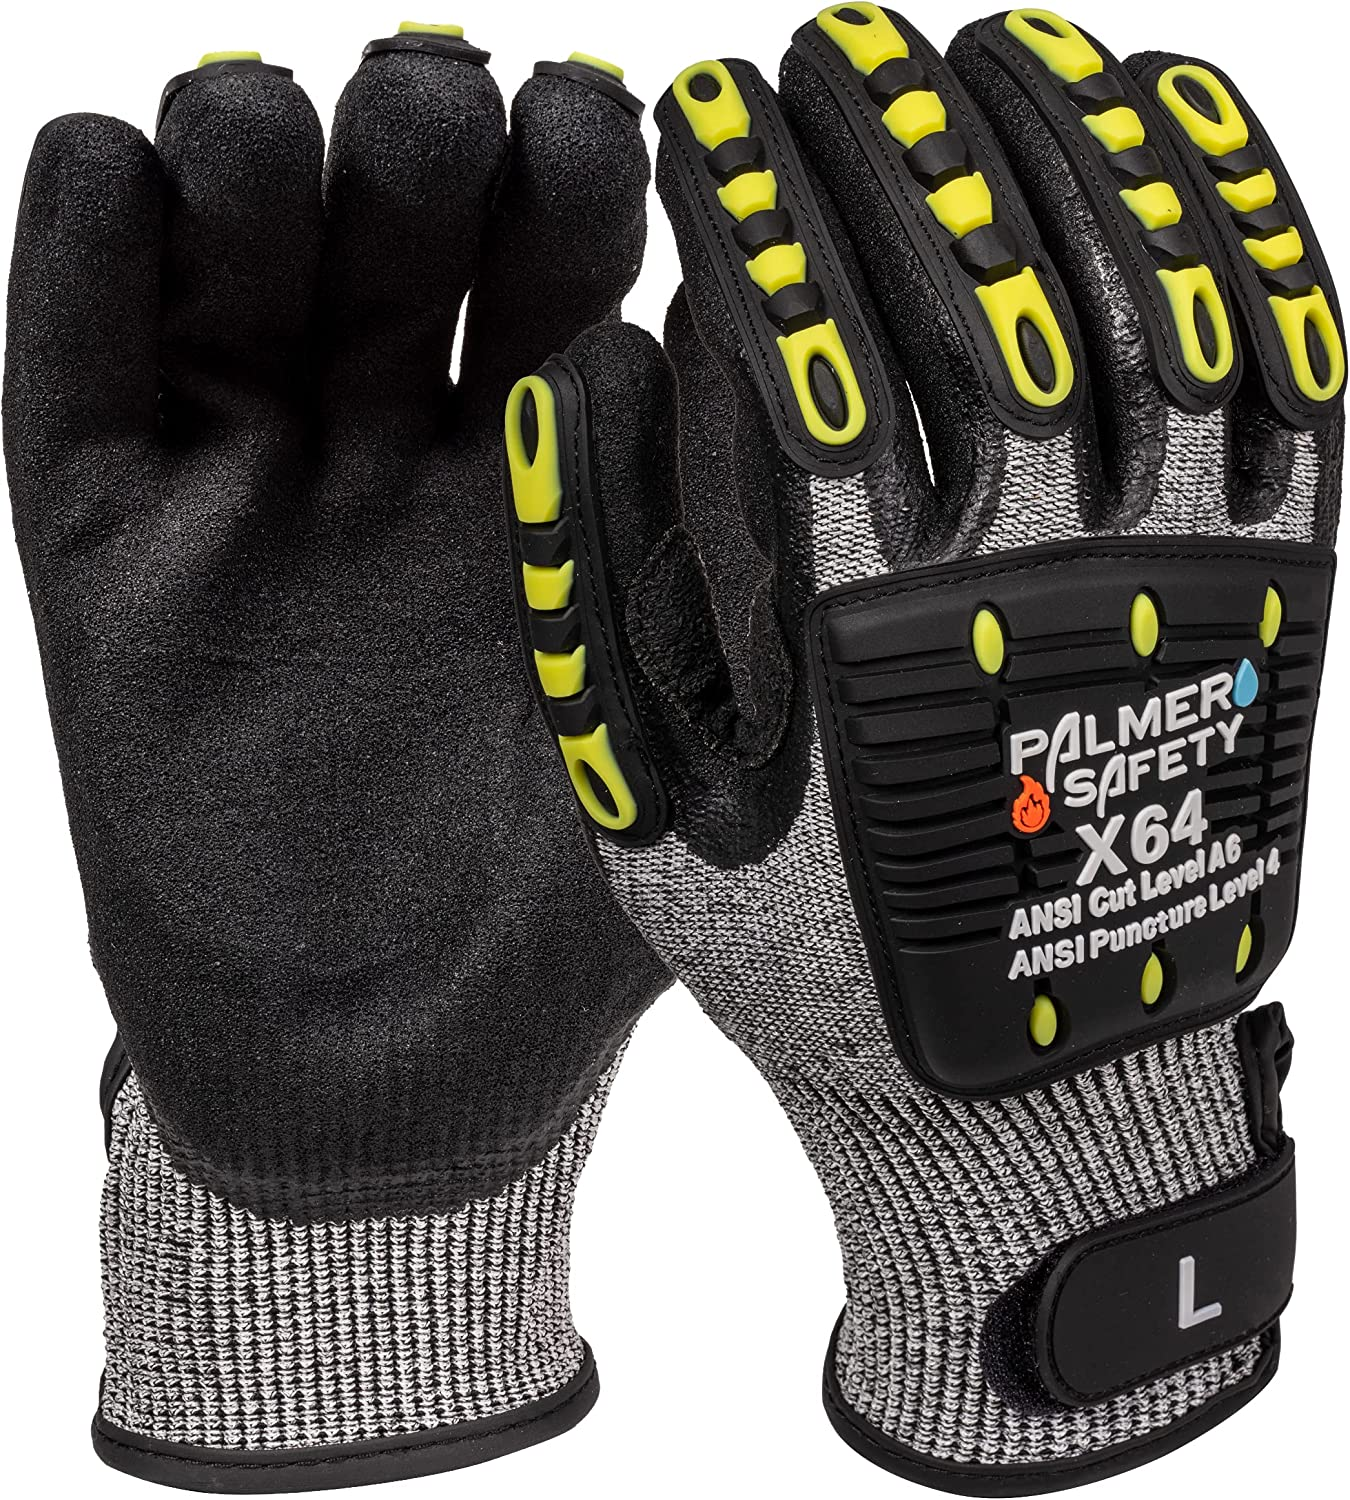 ATERET General Utility Sales results No. 1 Work Gloves Protection Ranking TOP16 Lig Cut Impact